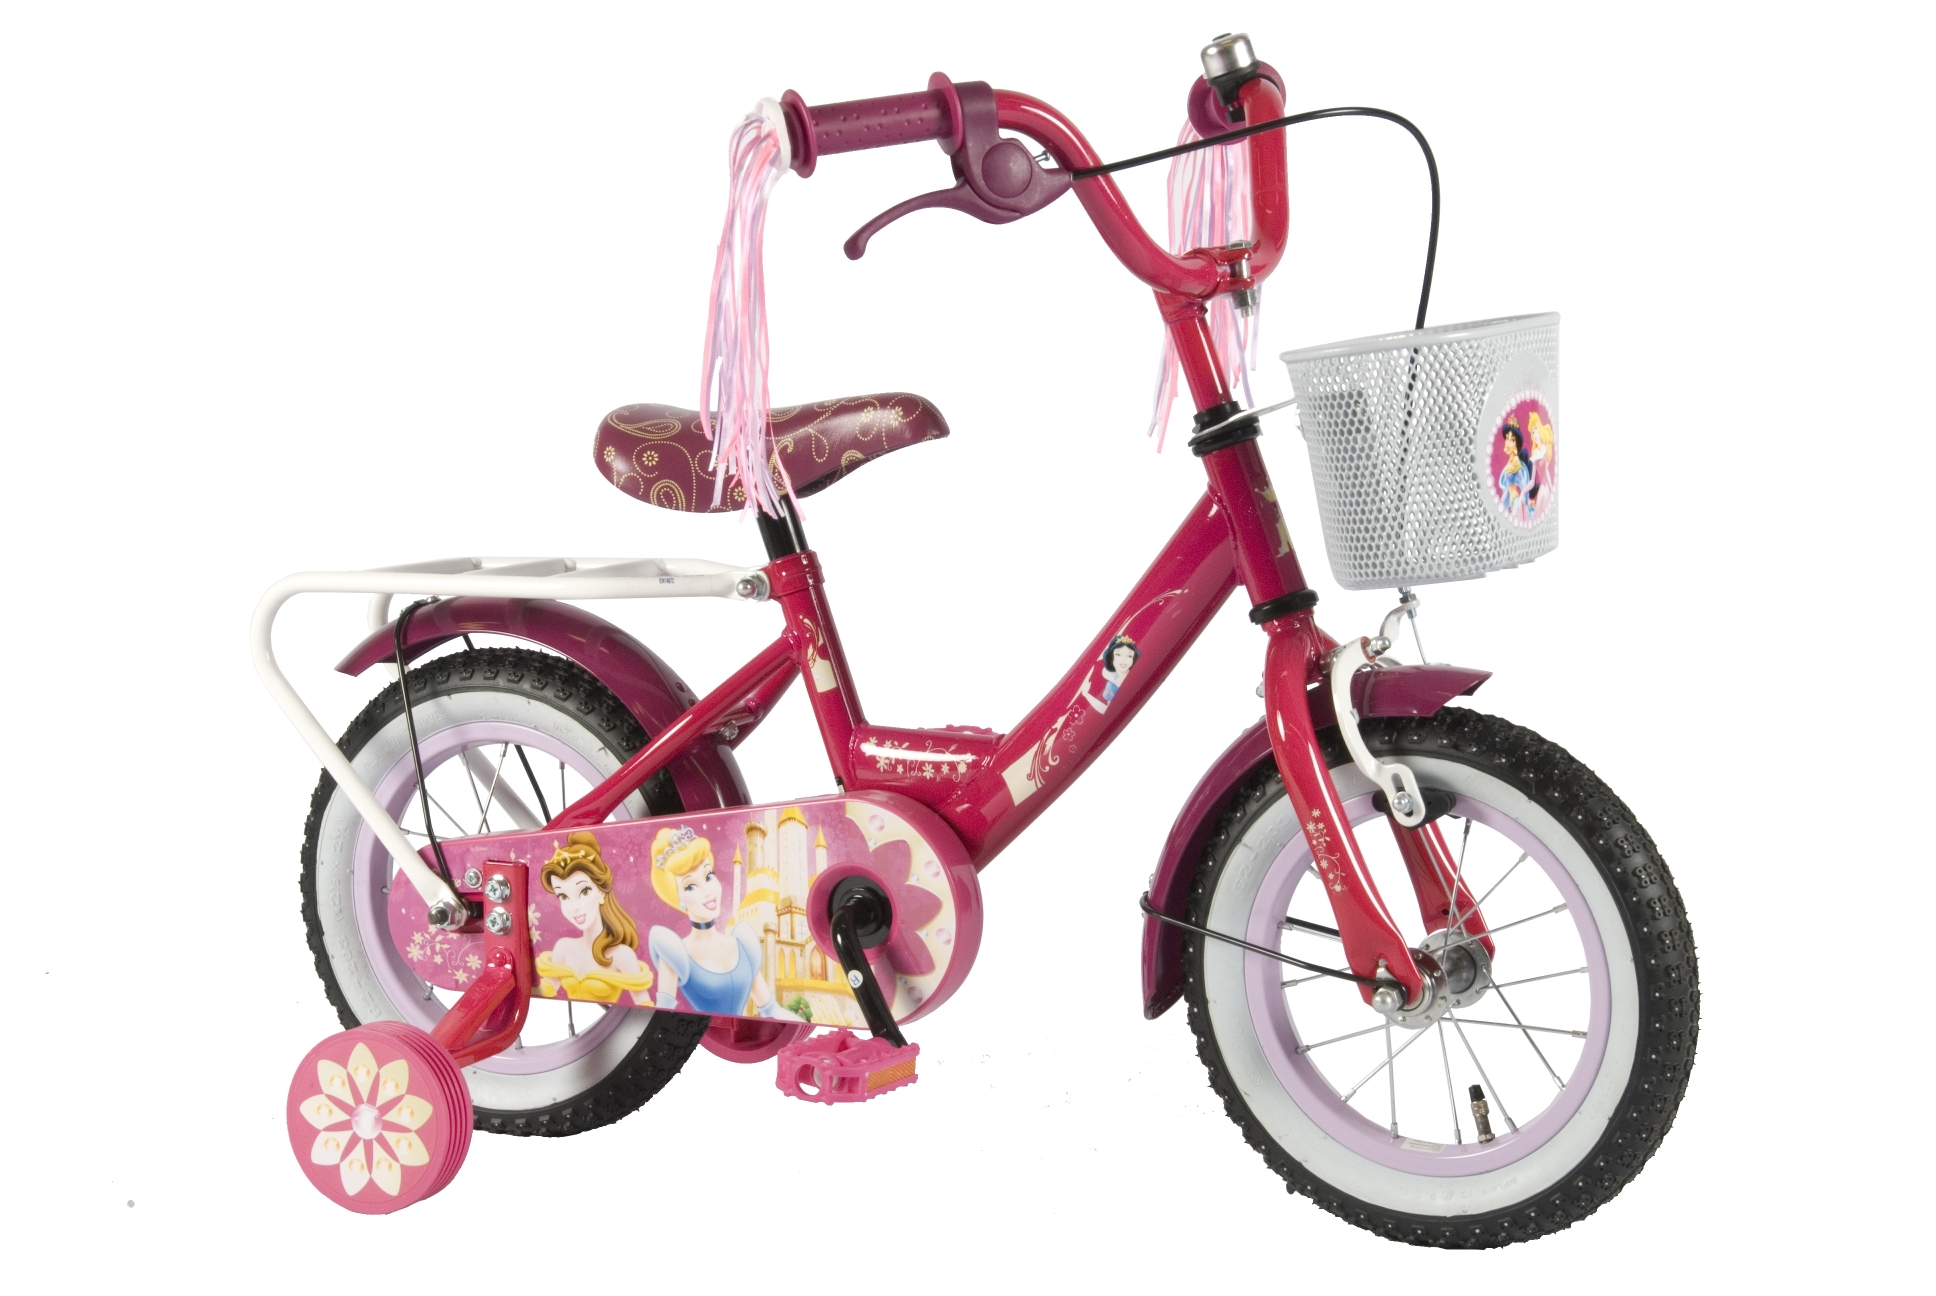 12 zoll kinder fahrrad m dchen rad disney prinzessin mit. Black Bedroom Furniture Sets. Home Design Ideas